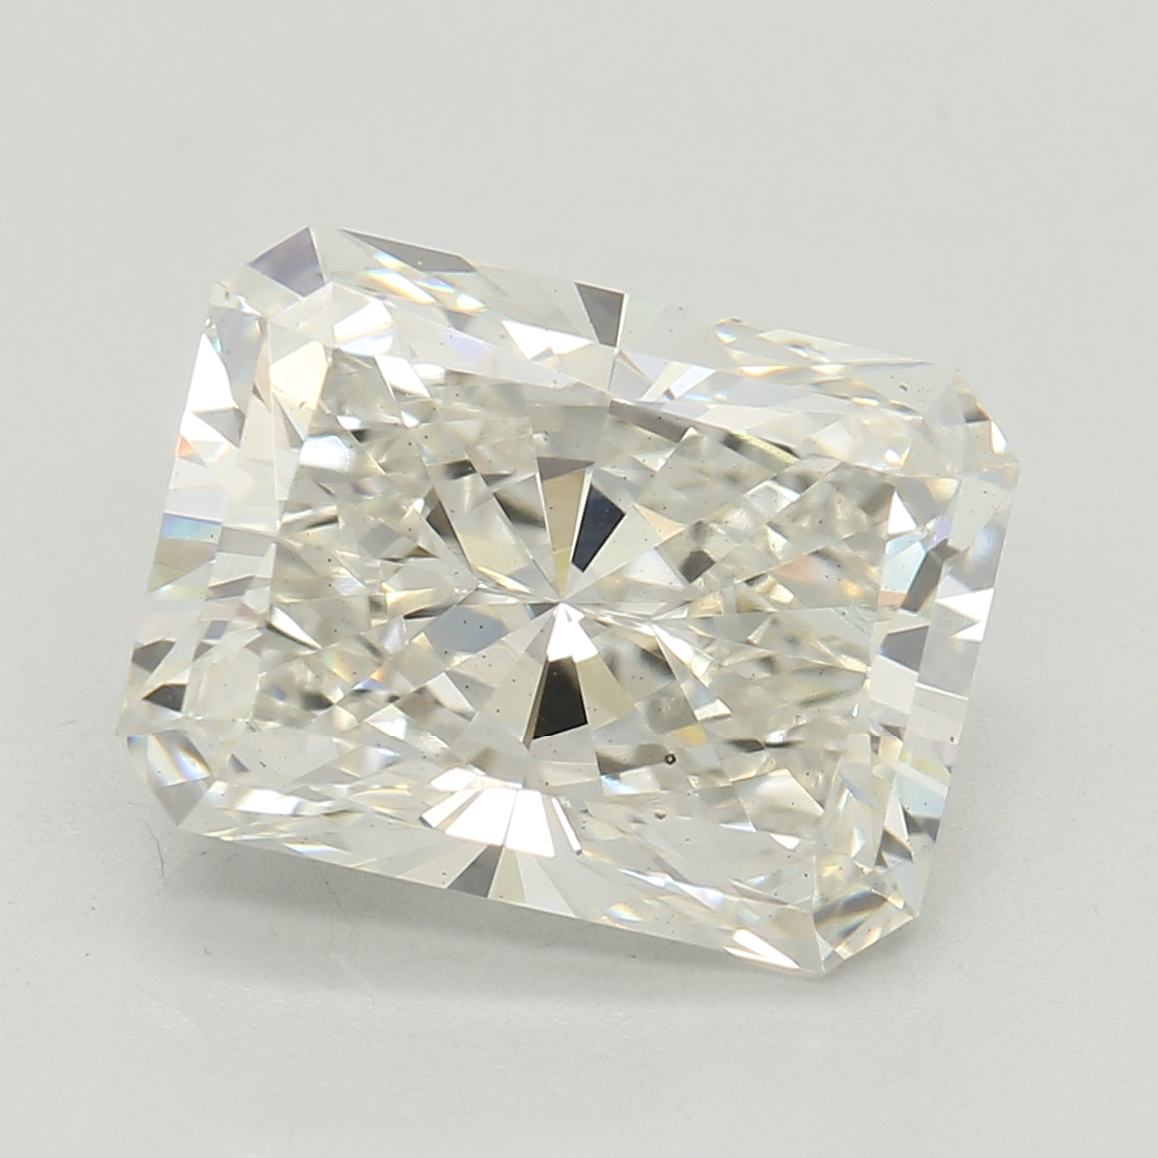 Radiant Cut 2.13 Carat I Color Vs2 Clarity Sku Lg9055658